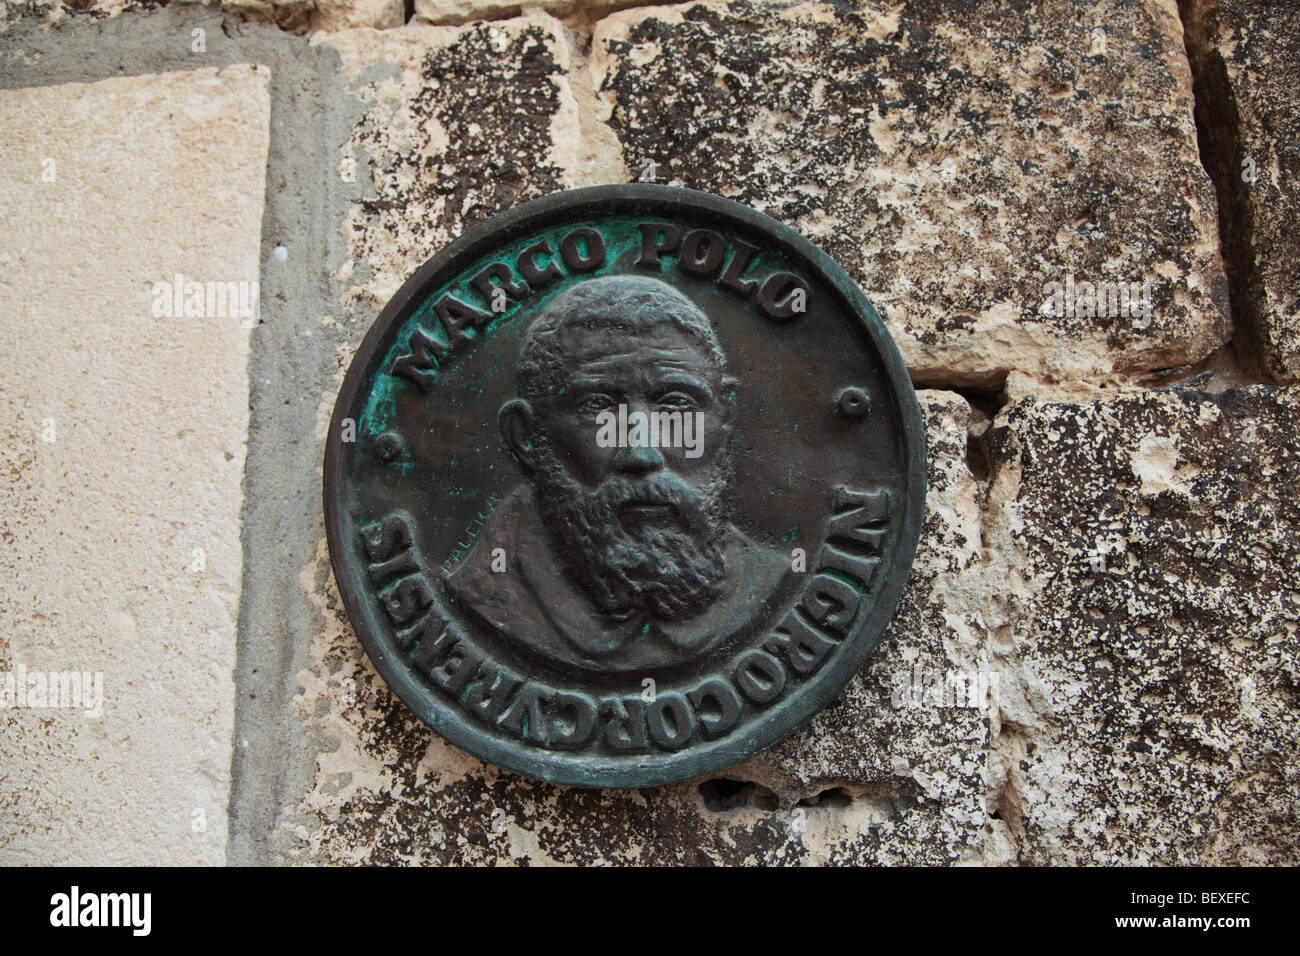 Plaque on wall of Marco Polo House on island of Korcula, Croatia - Stock Image